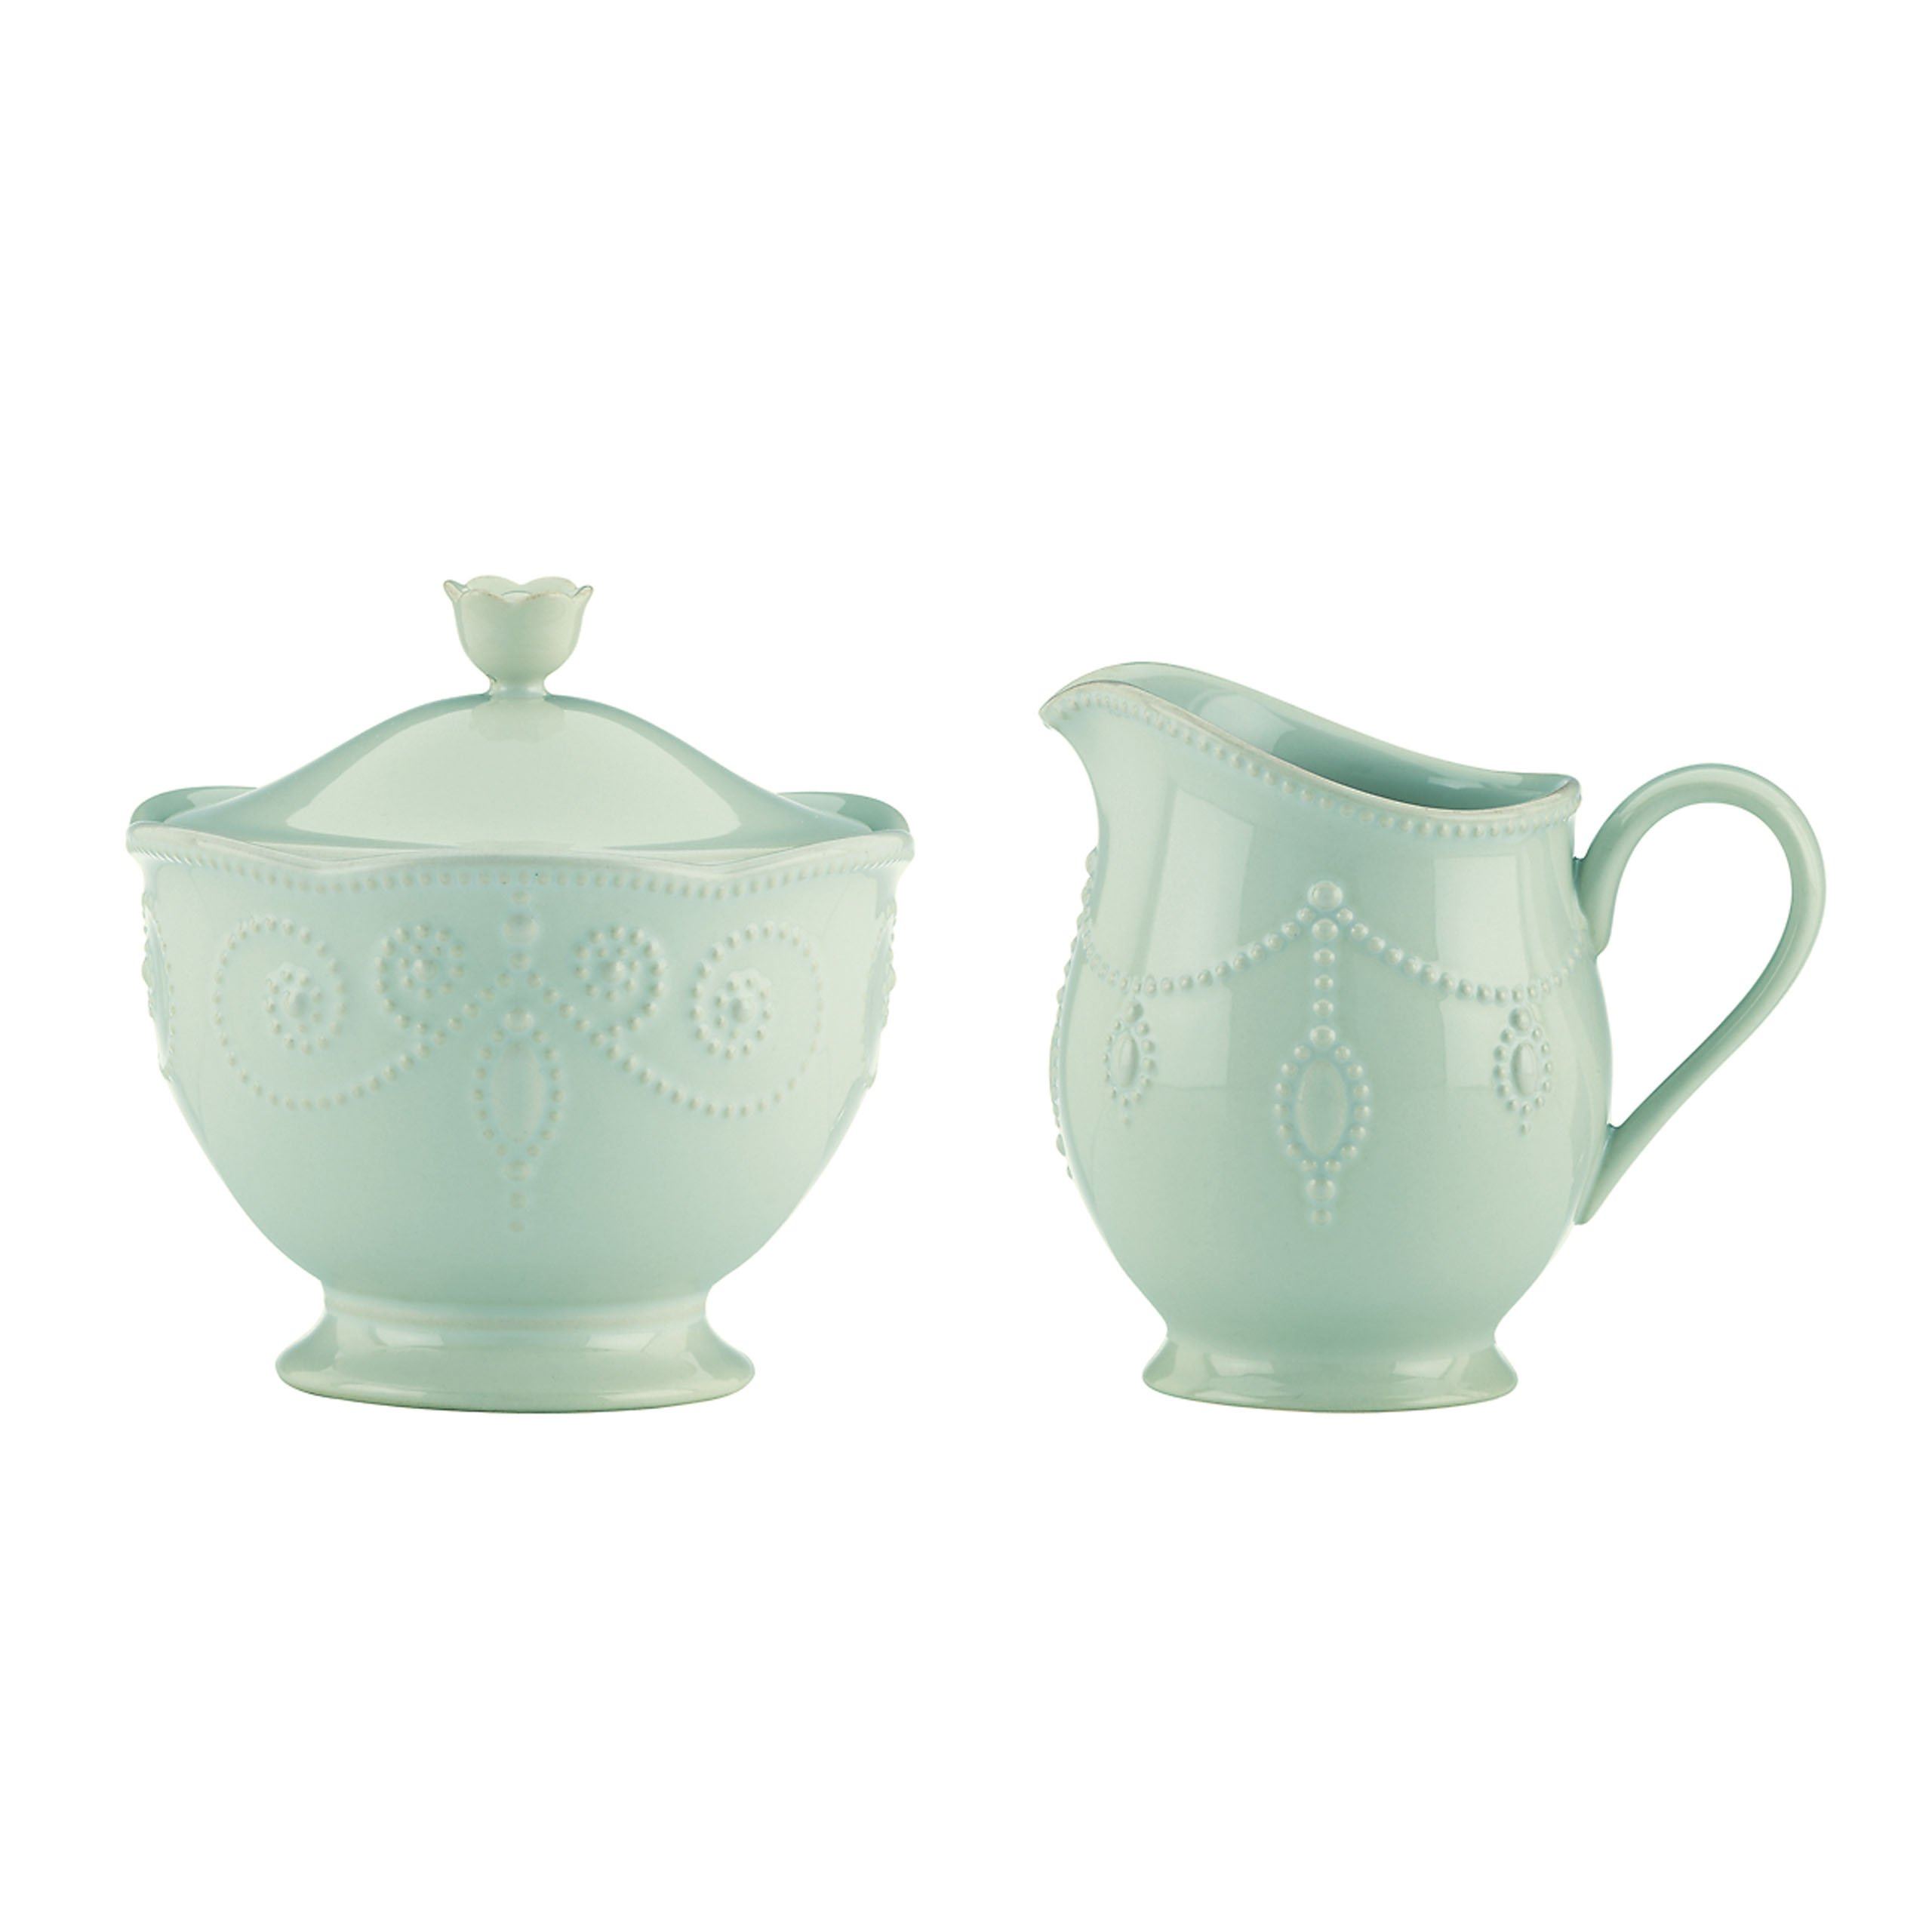 Lenox French Perle Sugar and Creamer Set, Ice Blue by Lenox